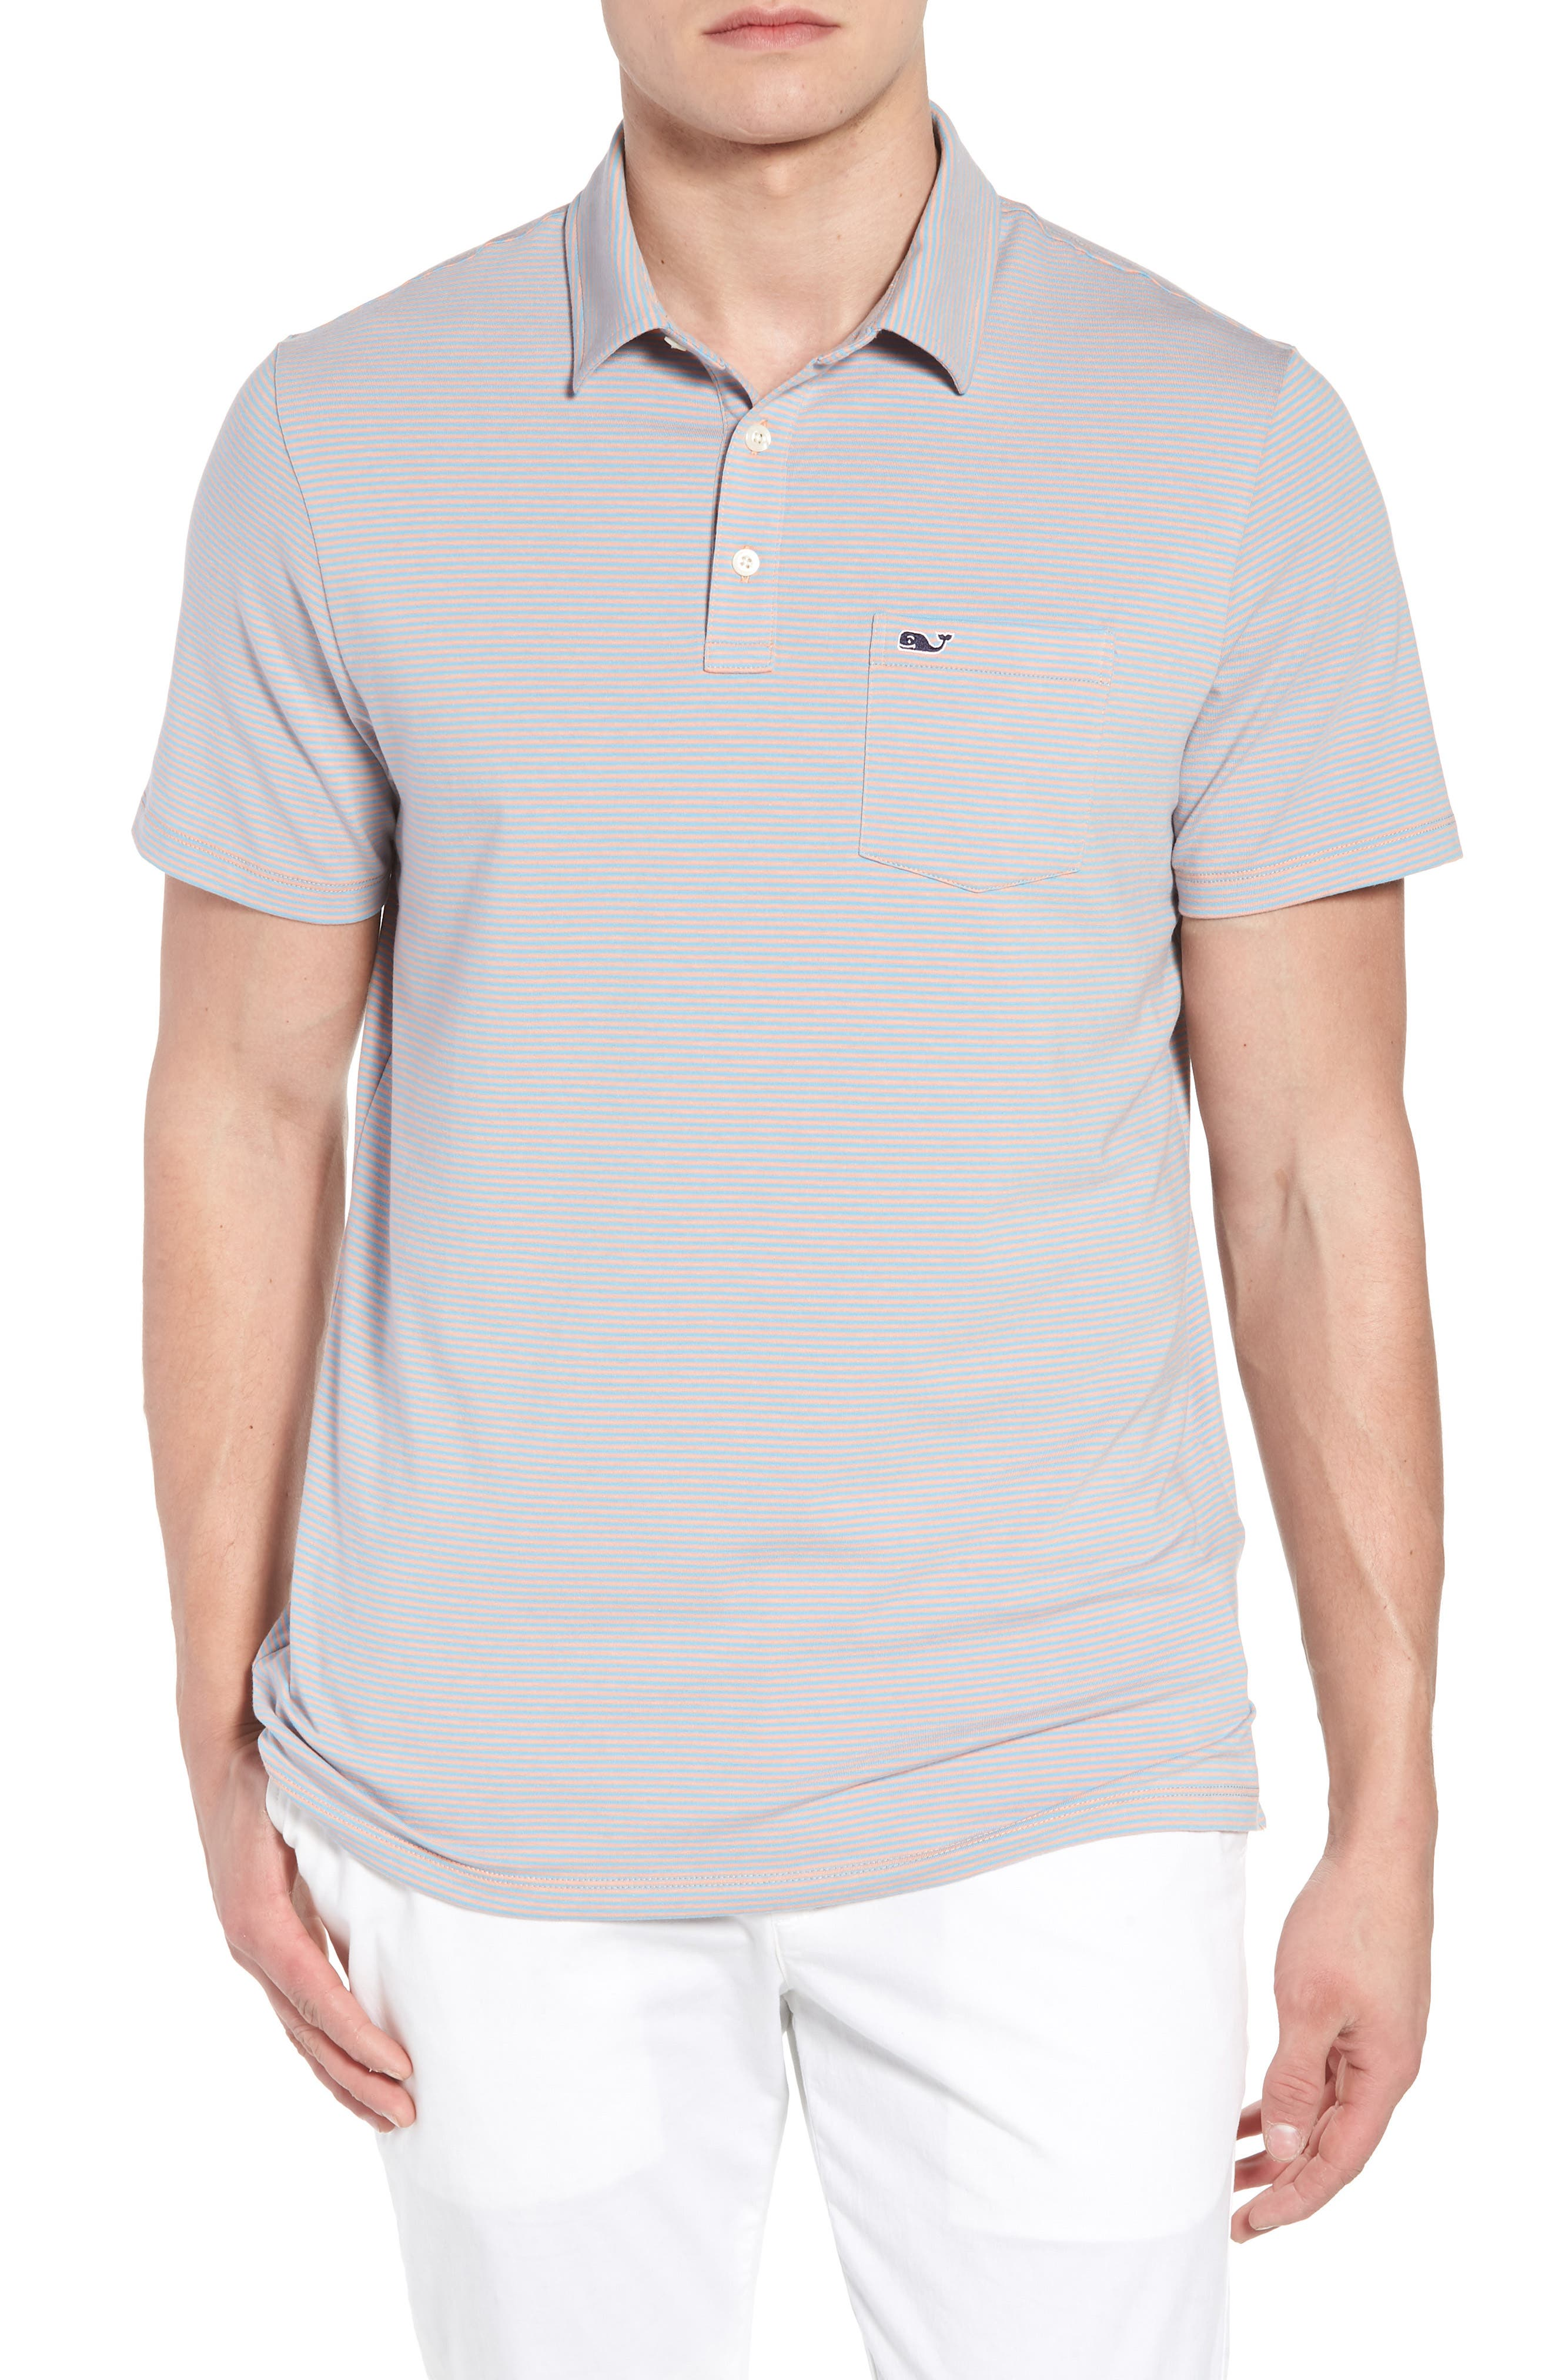 vineyard vines Edgartown Stripe Stretch Polo